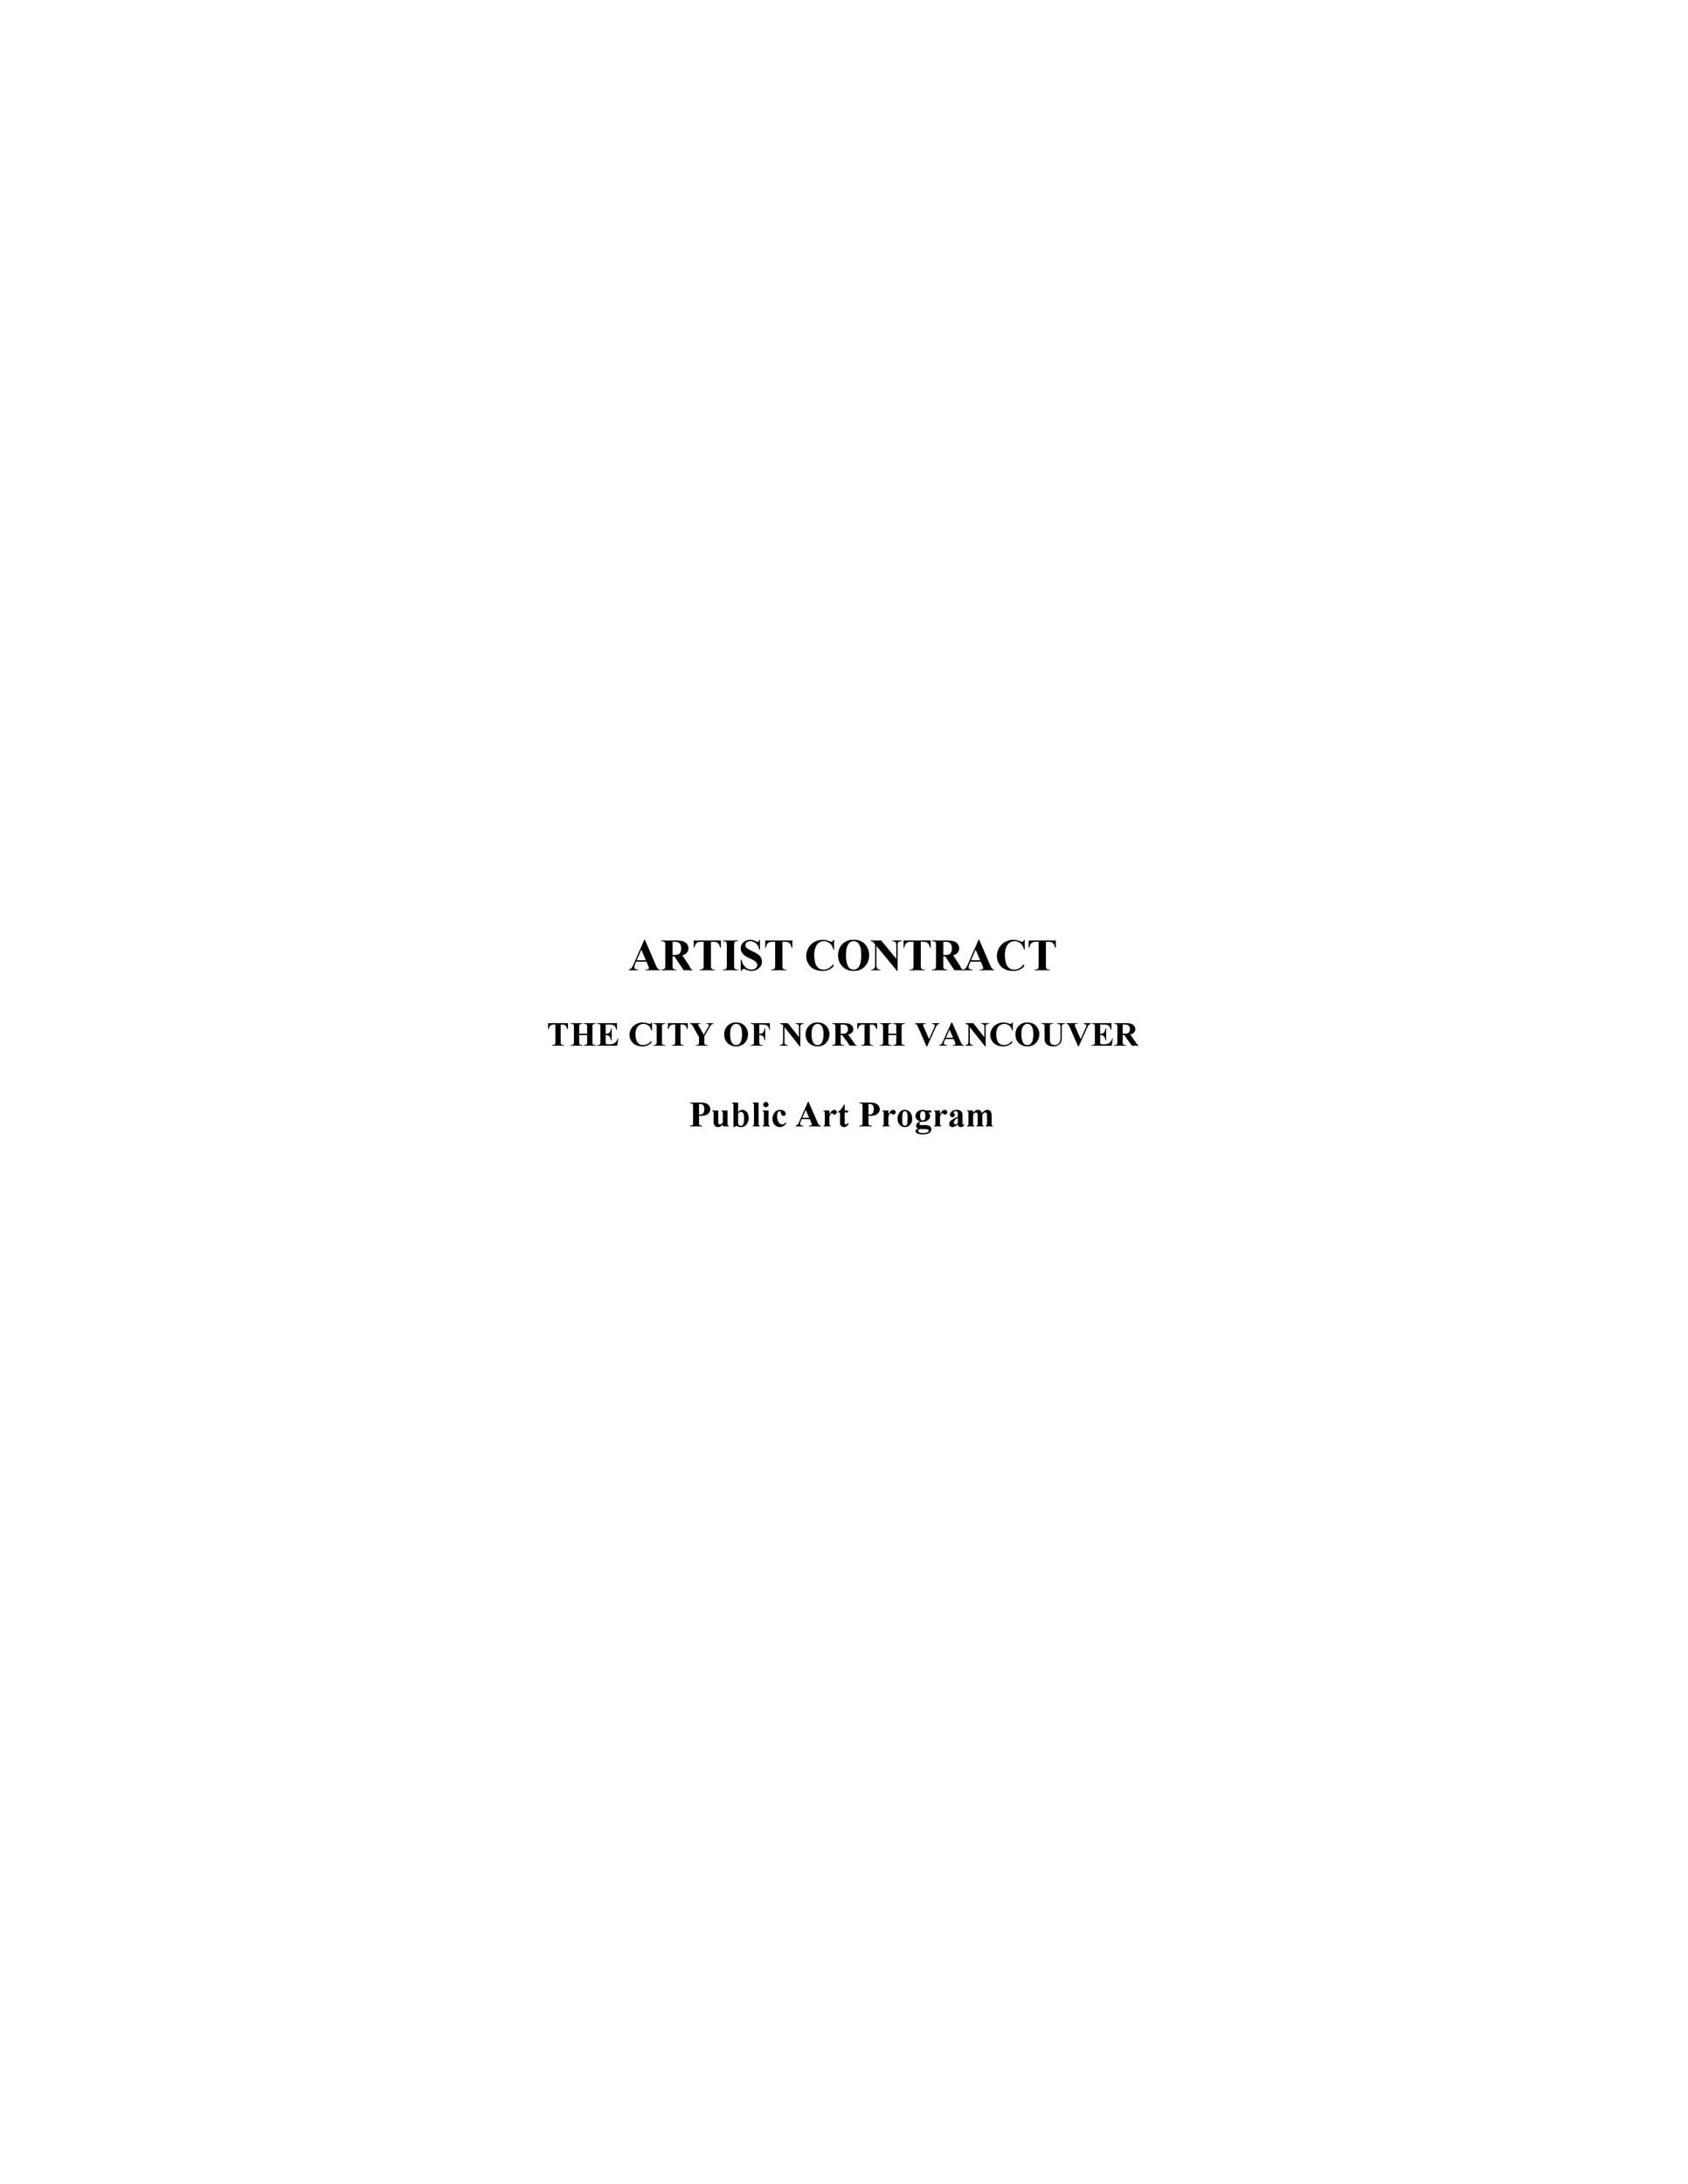 Free artist management contract 30